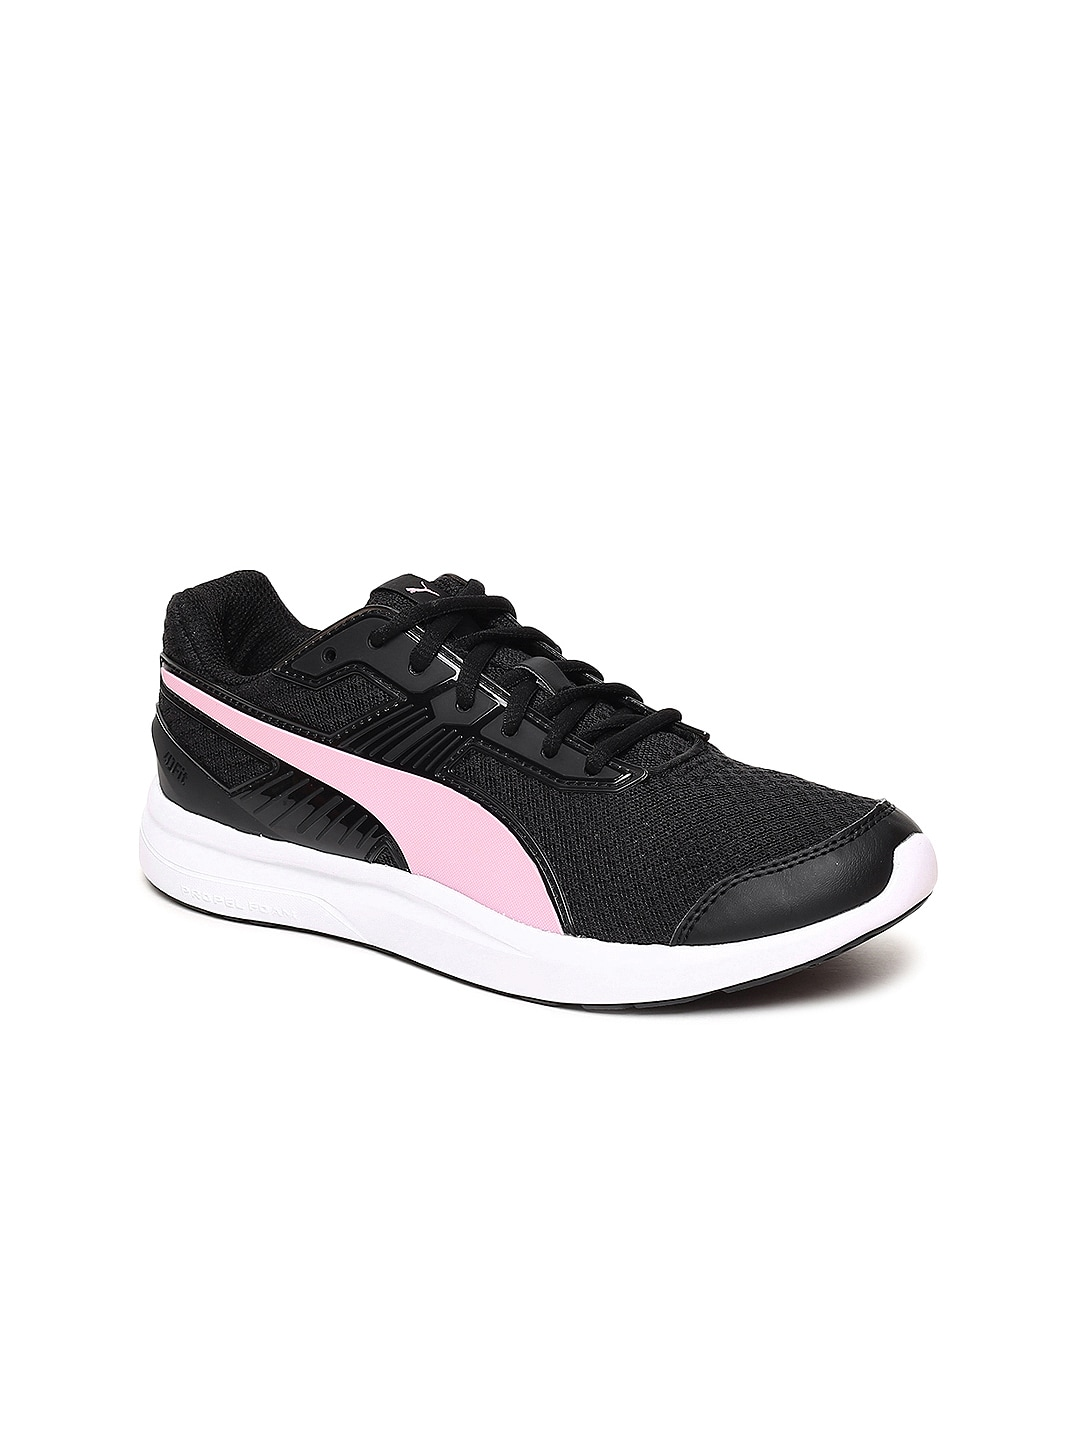 8170281b01a792 Puma Women Shoes - Buy Puma Women Shoes online in India